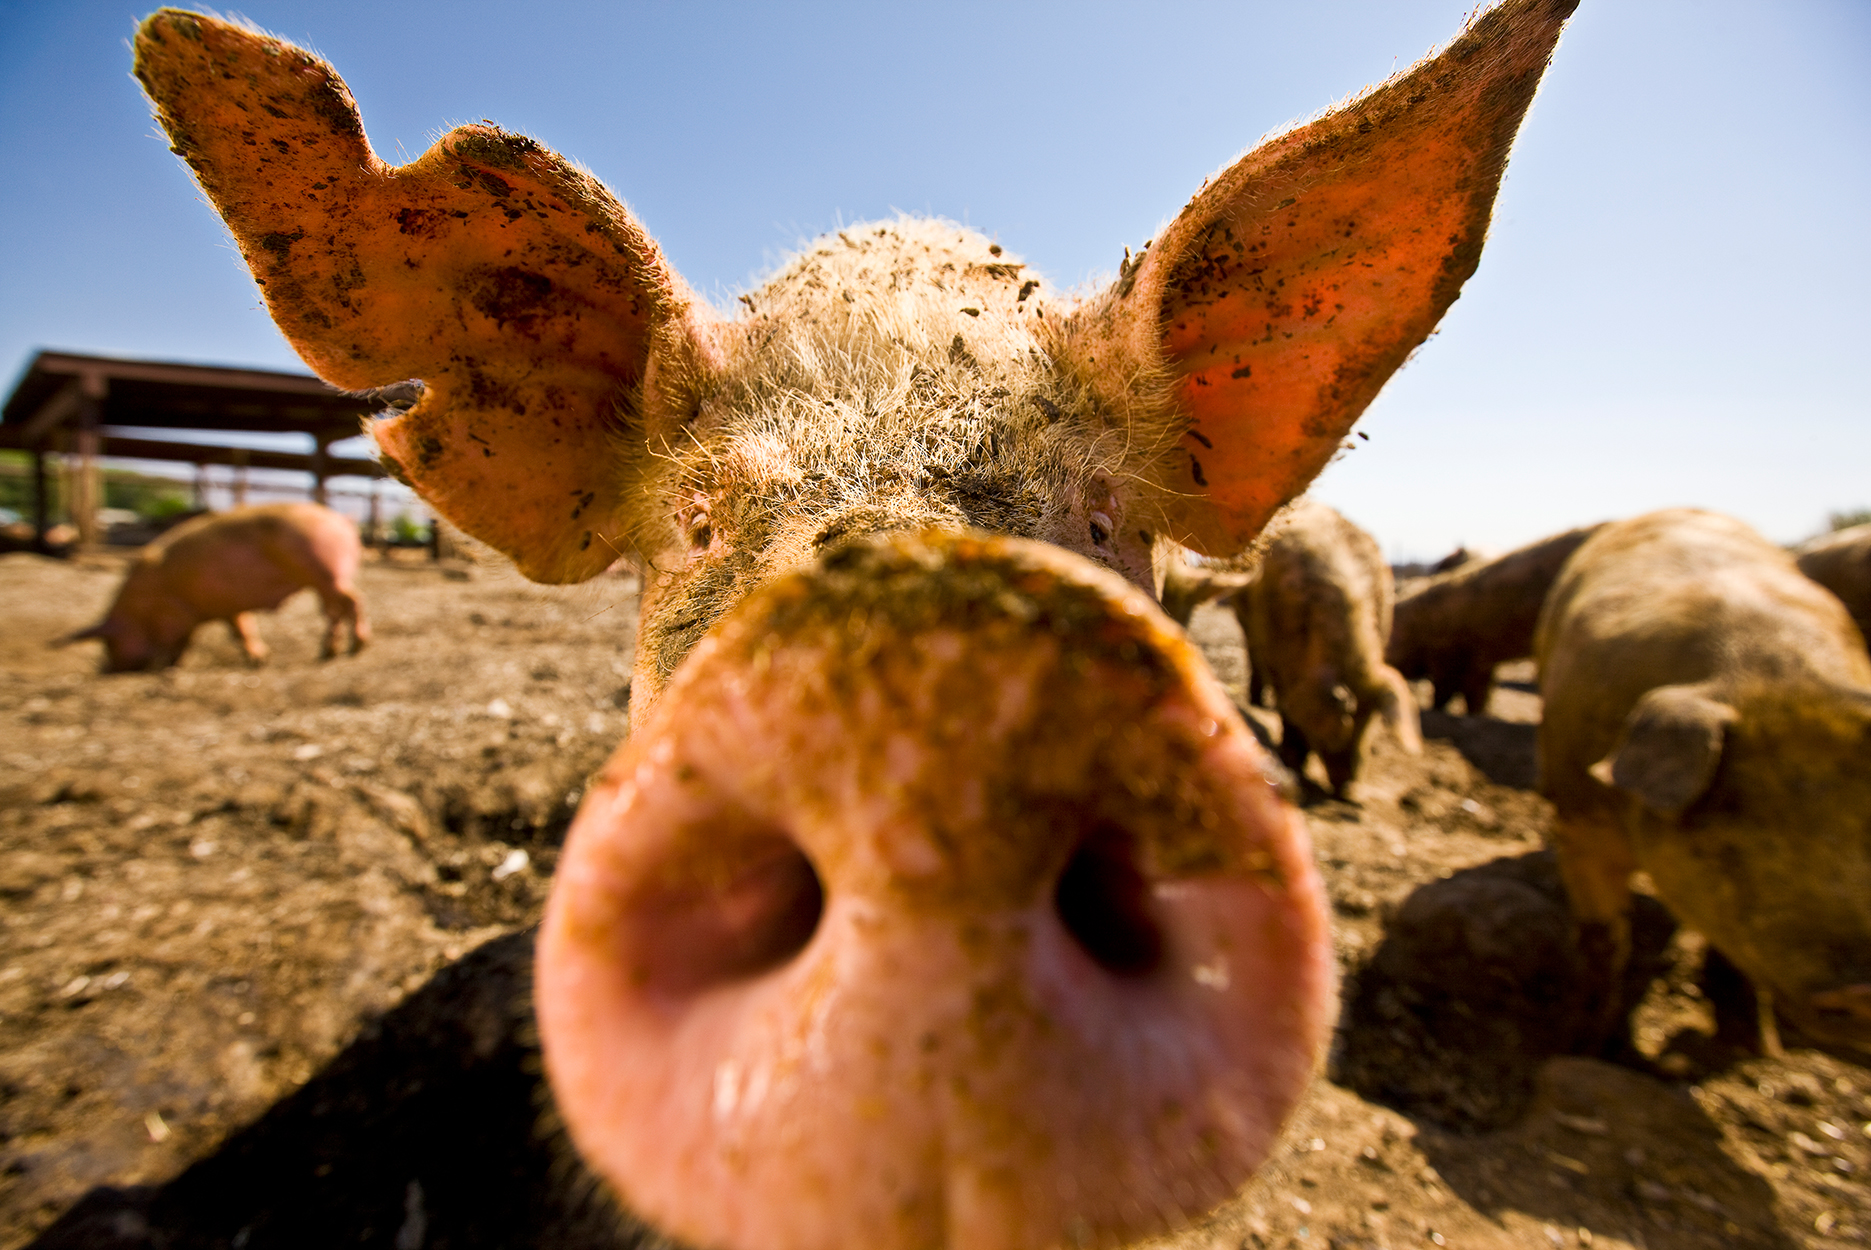 Close-up, wide angle view of a pig's snout & ear.